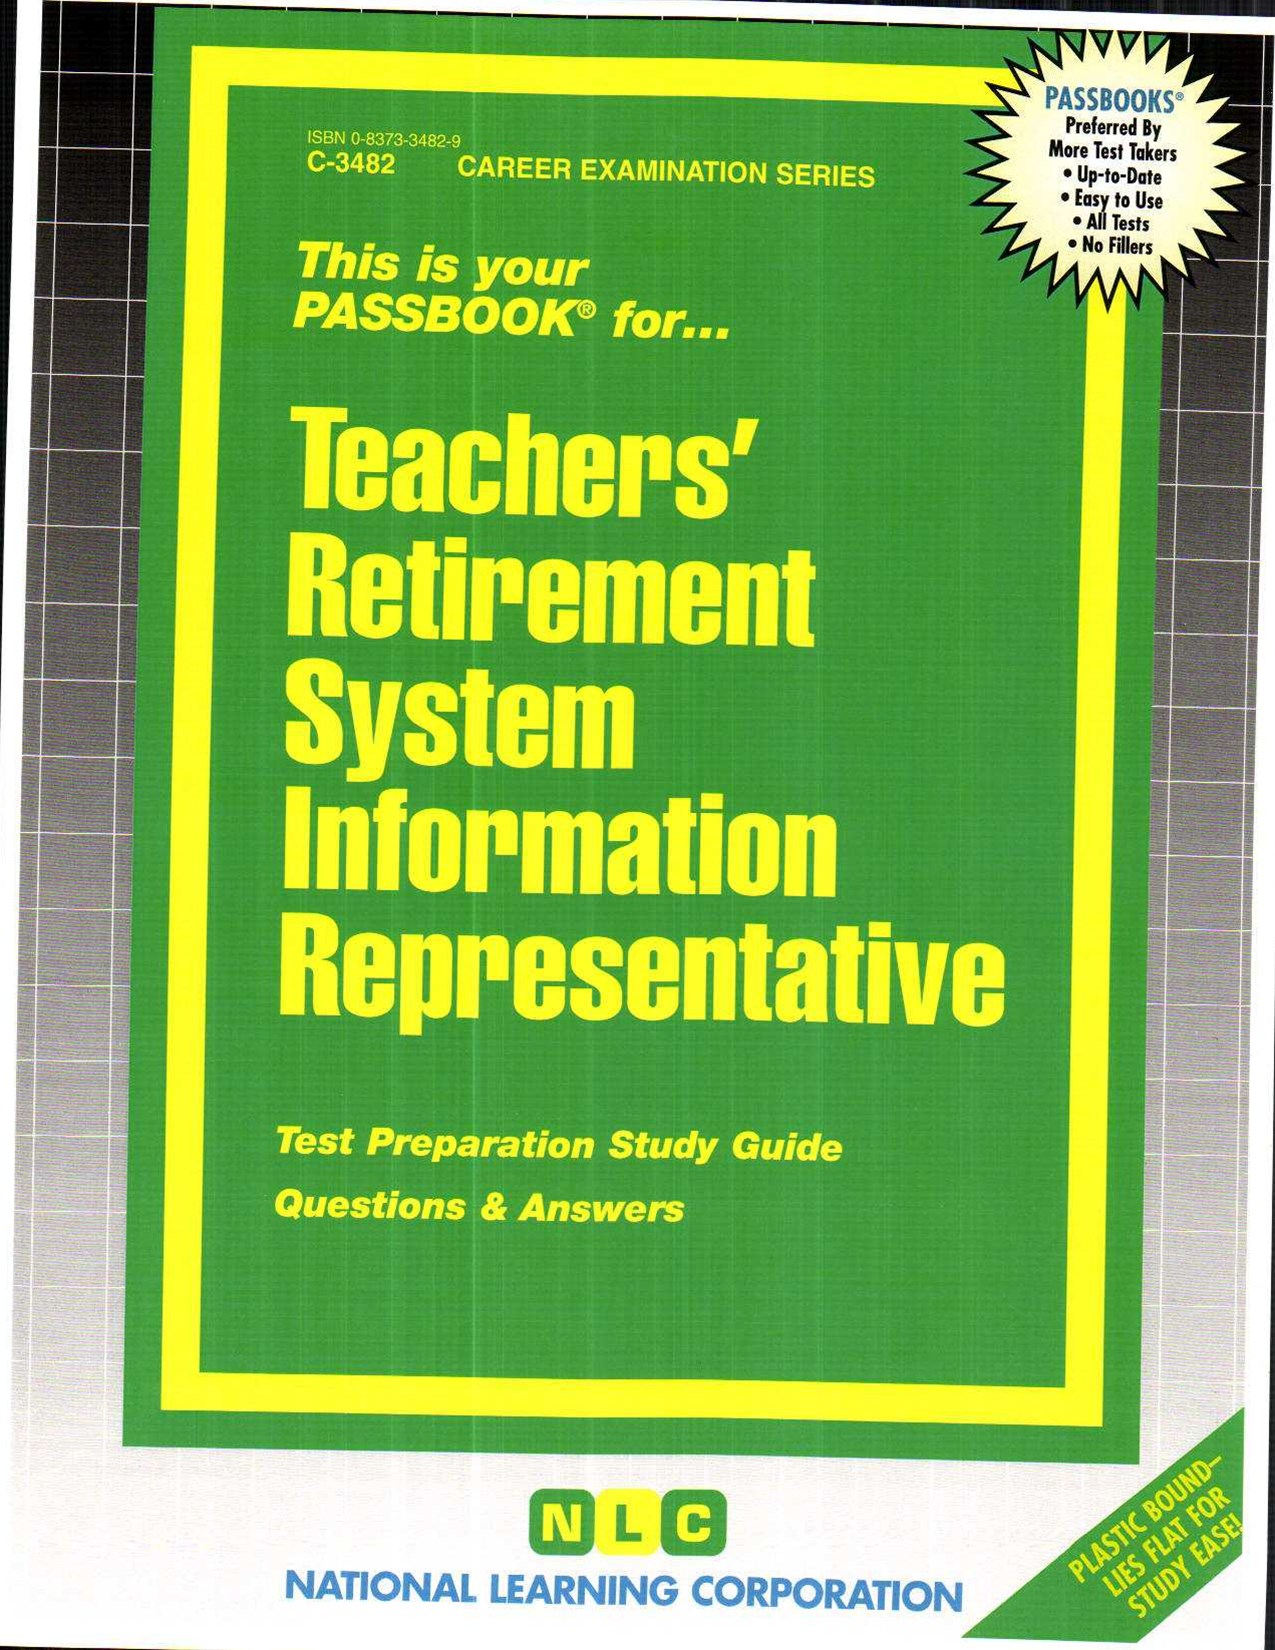 Teachers' Retirement System Information Representative